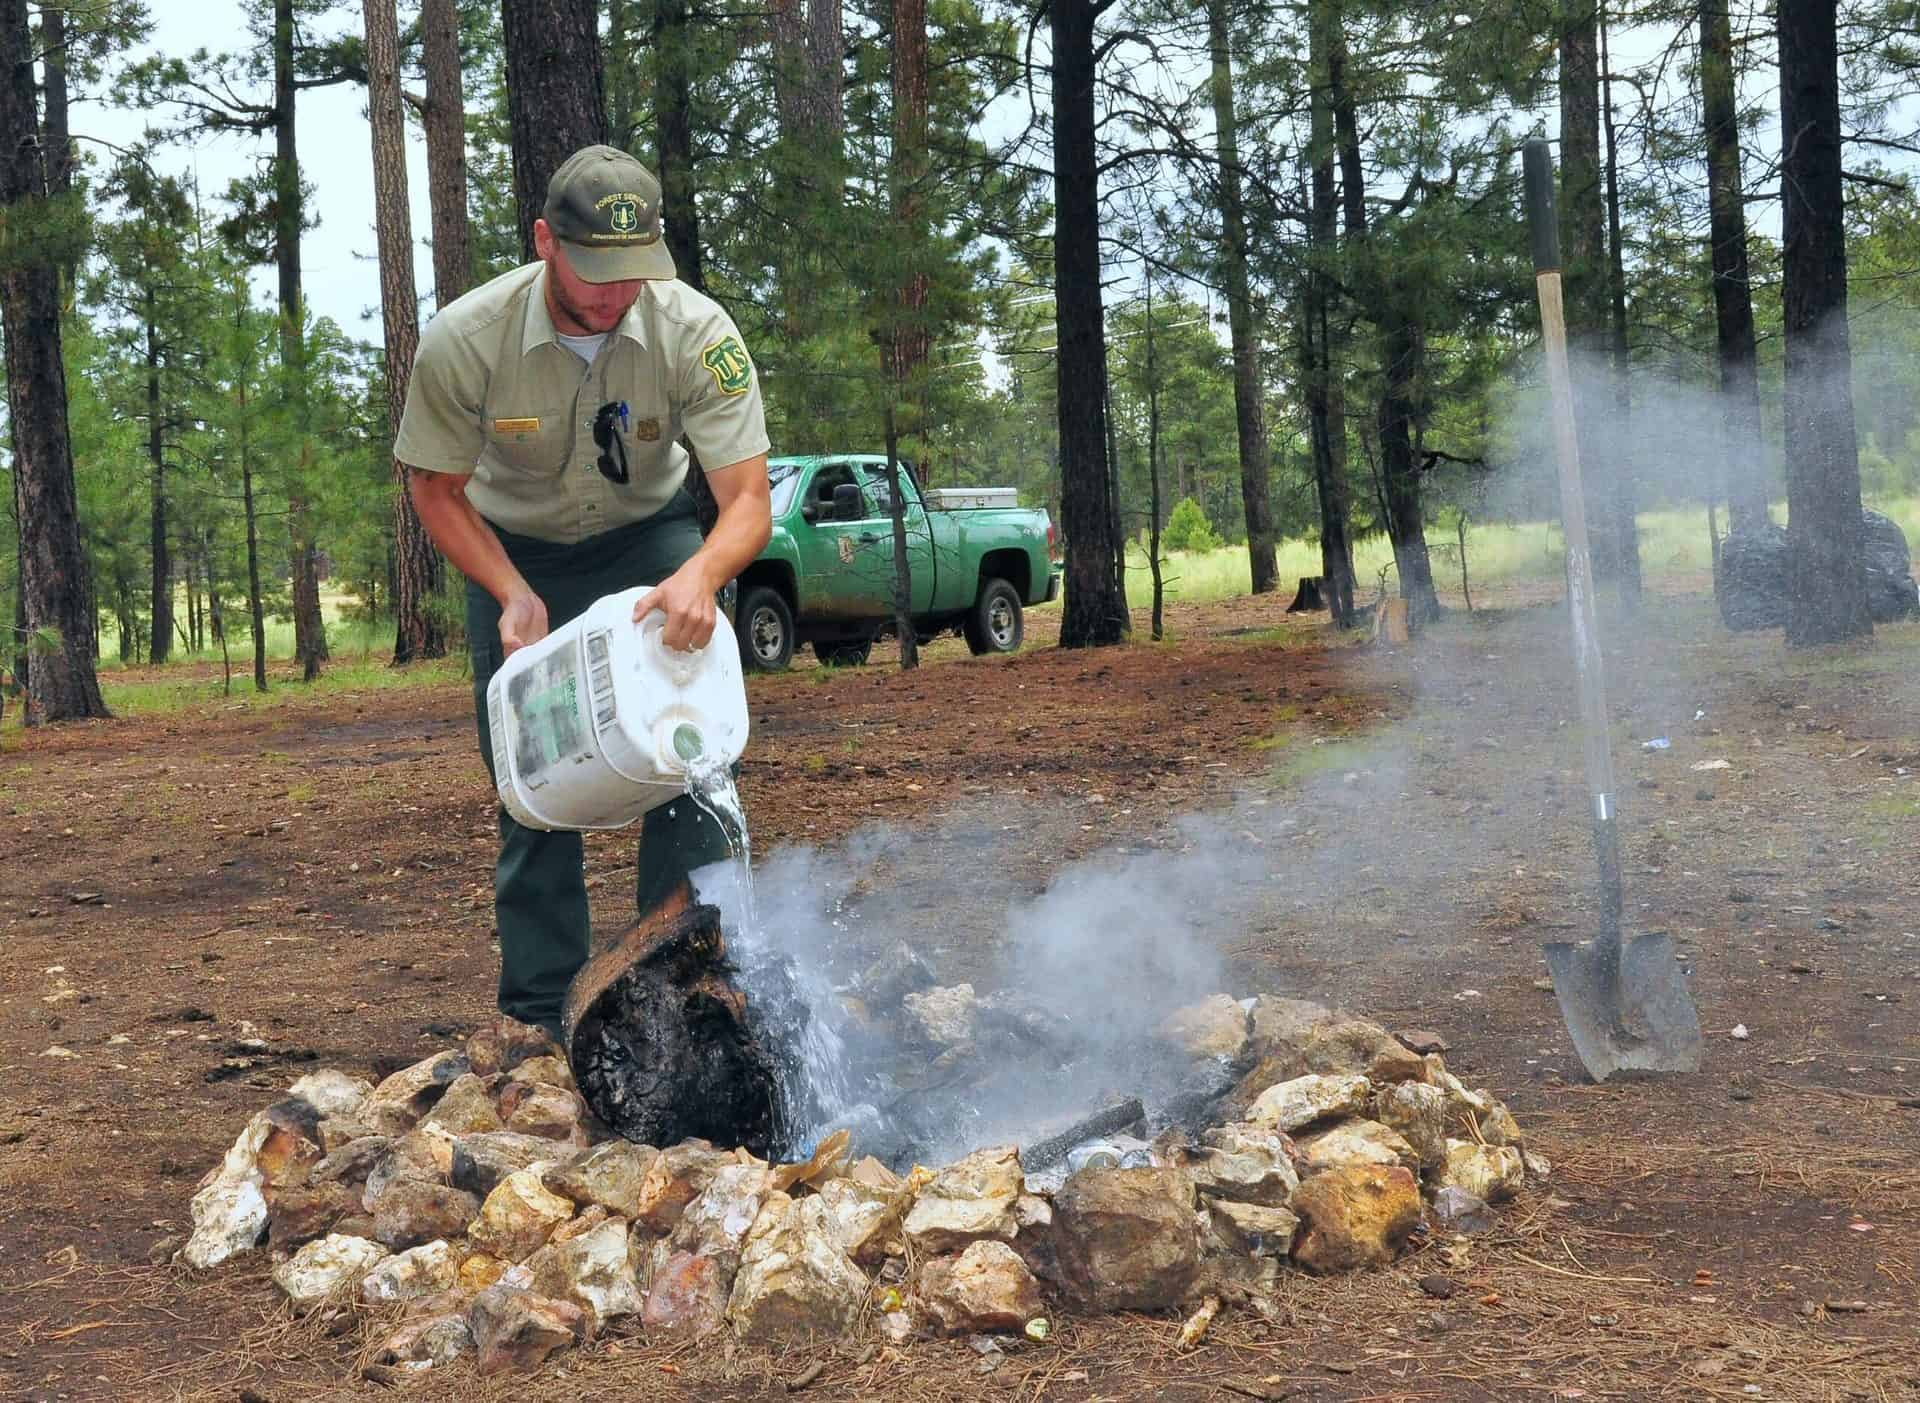 A forest service ranger dumps water from a gallon jug on a smoldering campfire